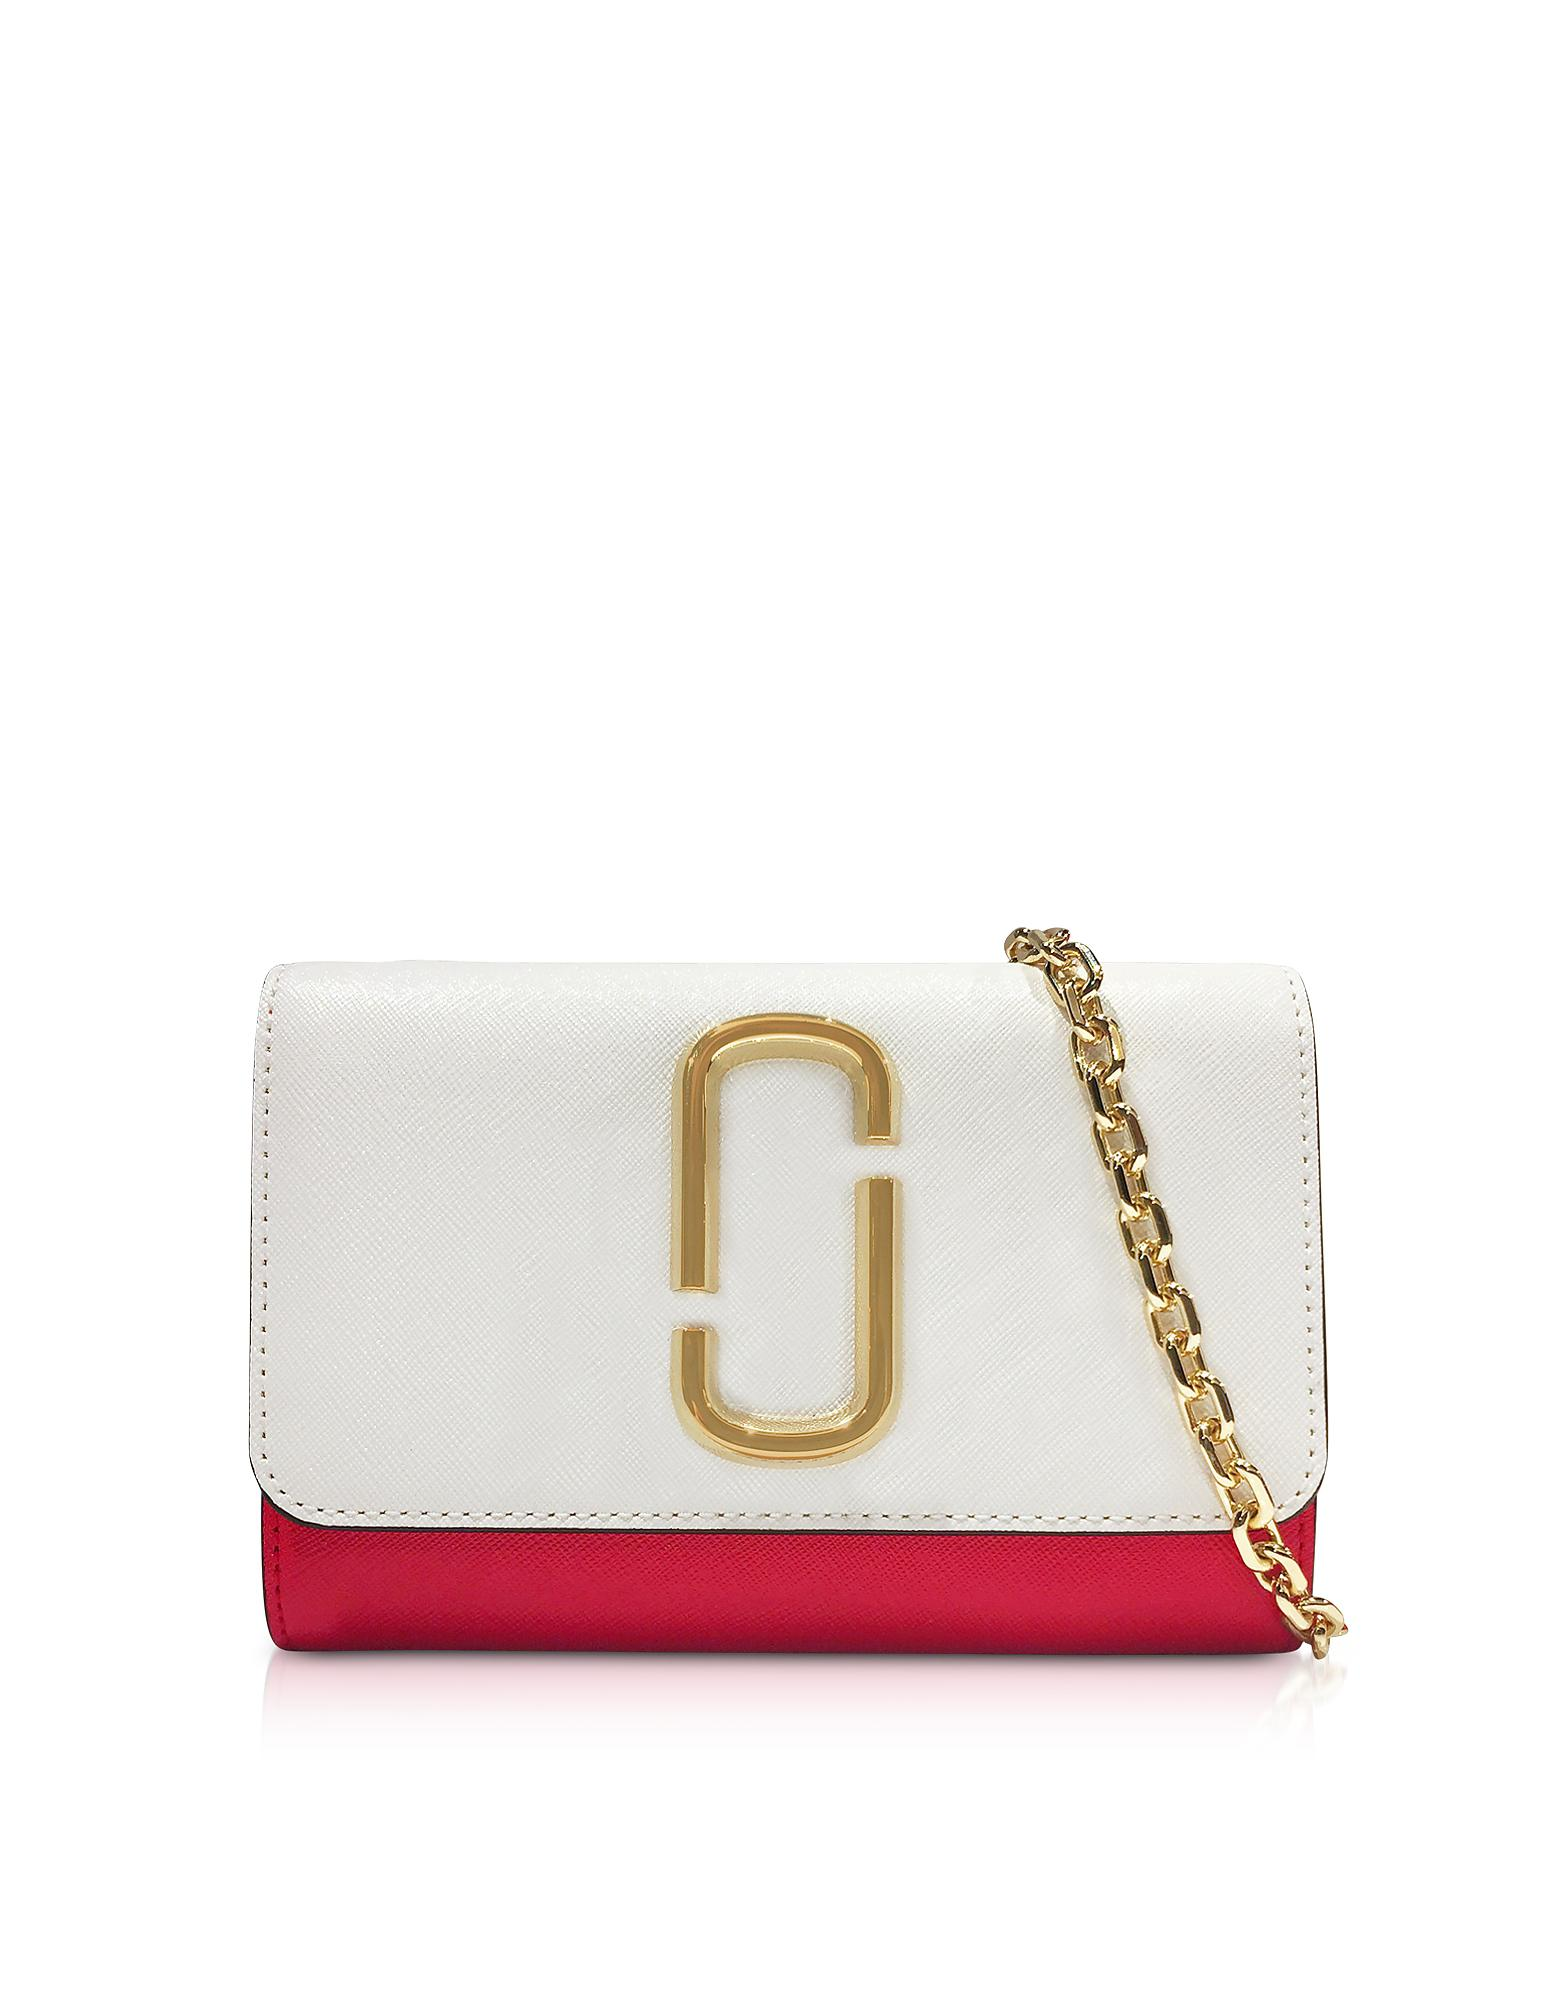 26d0857fca Marc Jacobs Snapshot Chain Wallet Clutch in White - Lyst